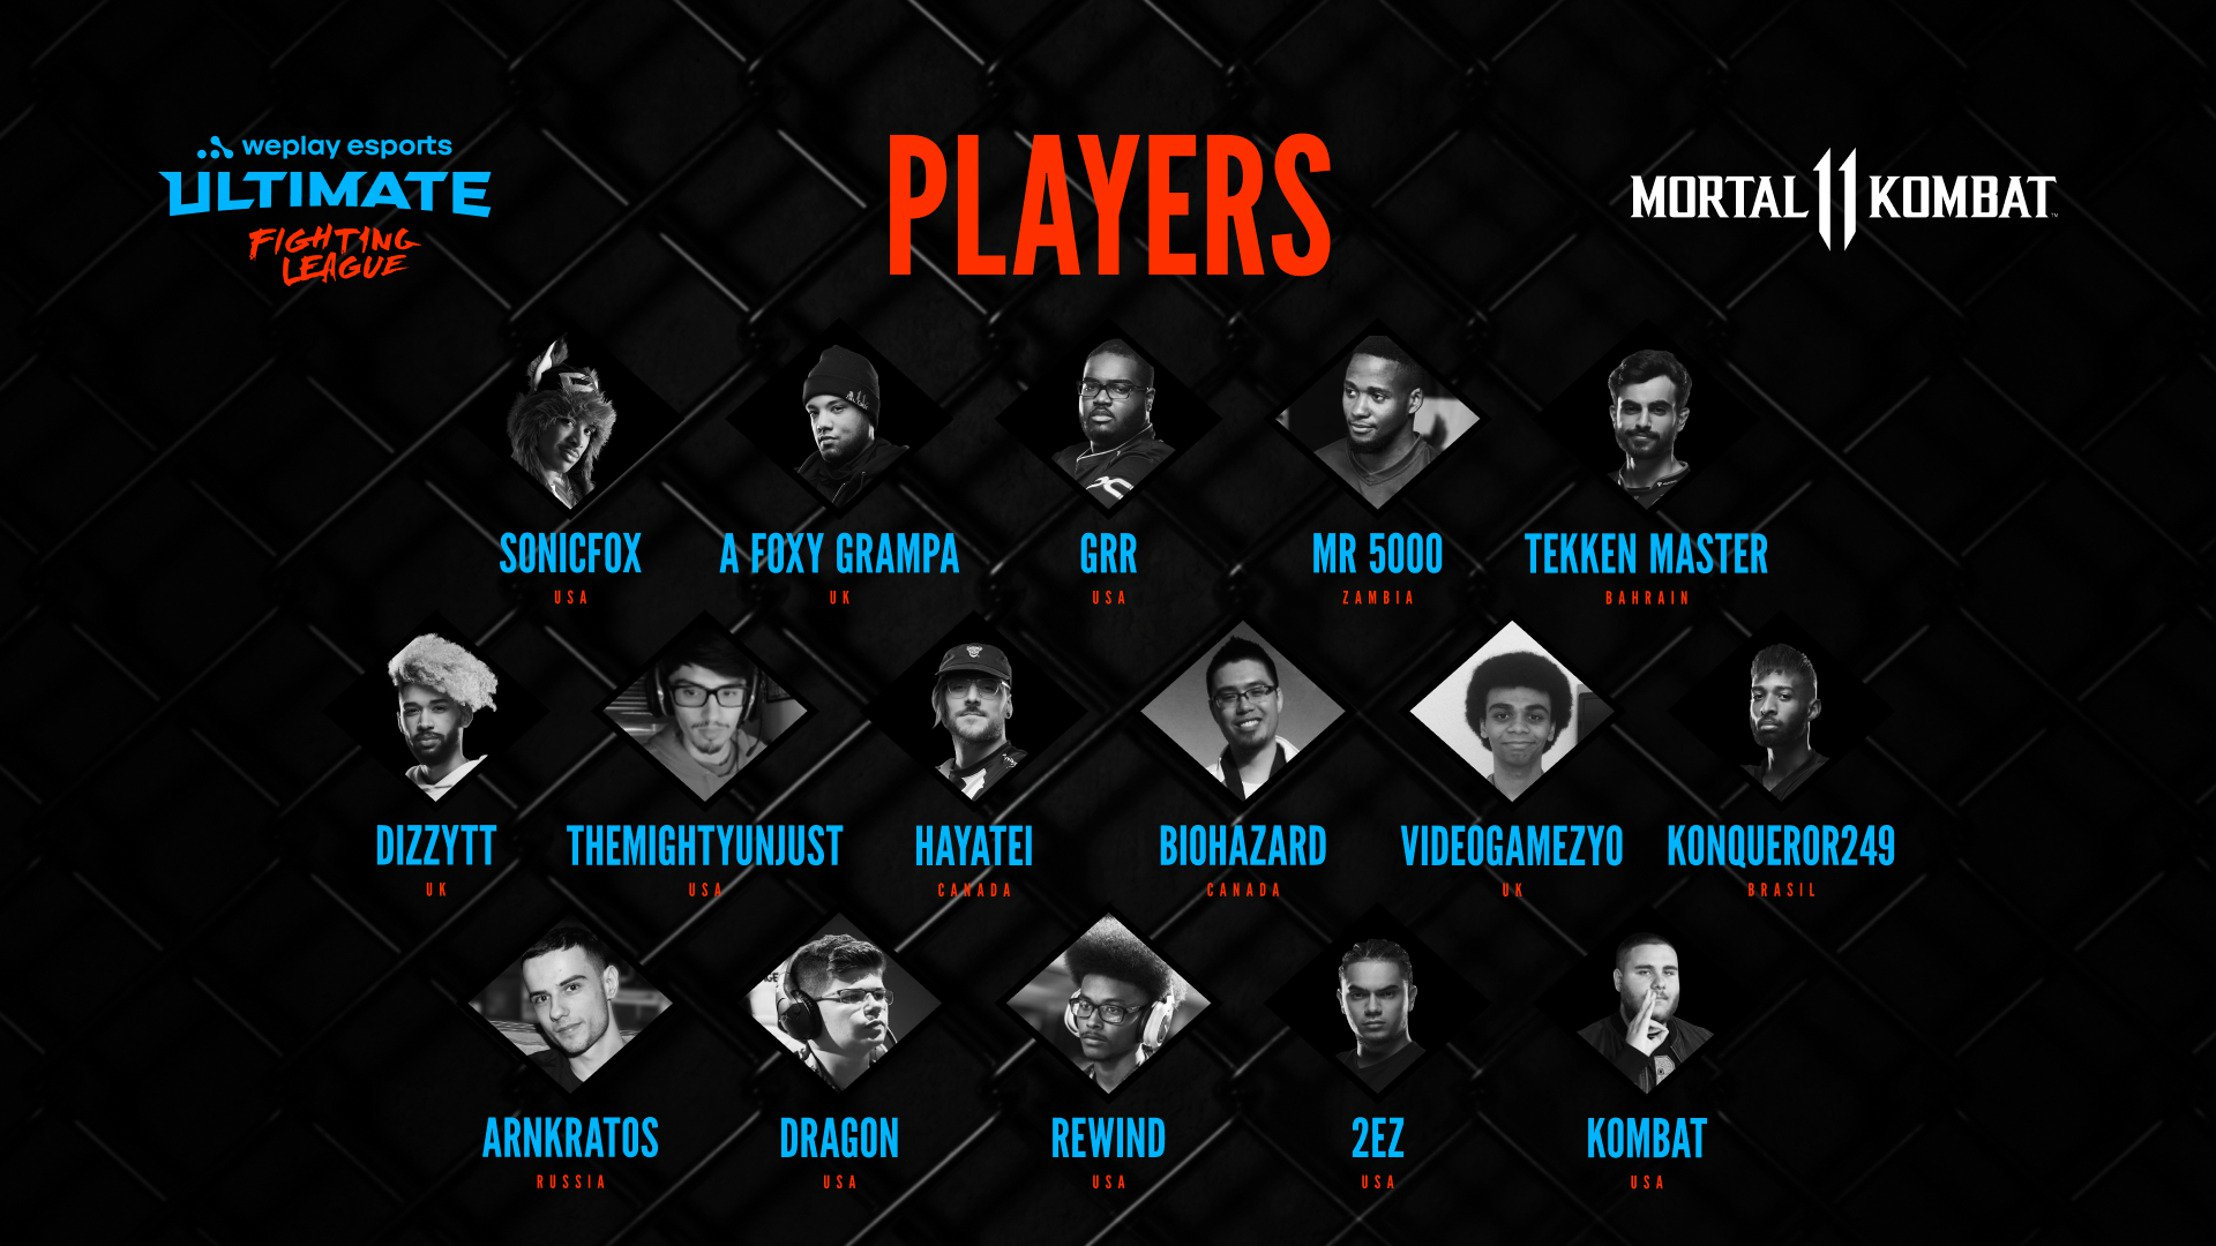 WePlay Esports reveals player roster of WePlay Ultimate Fighting League Season 1 for MK11